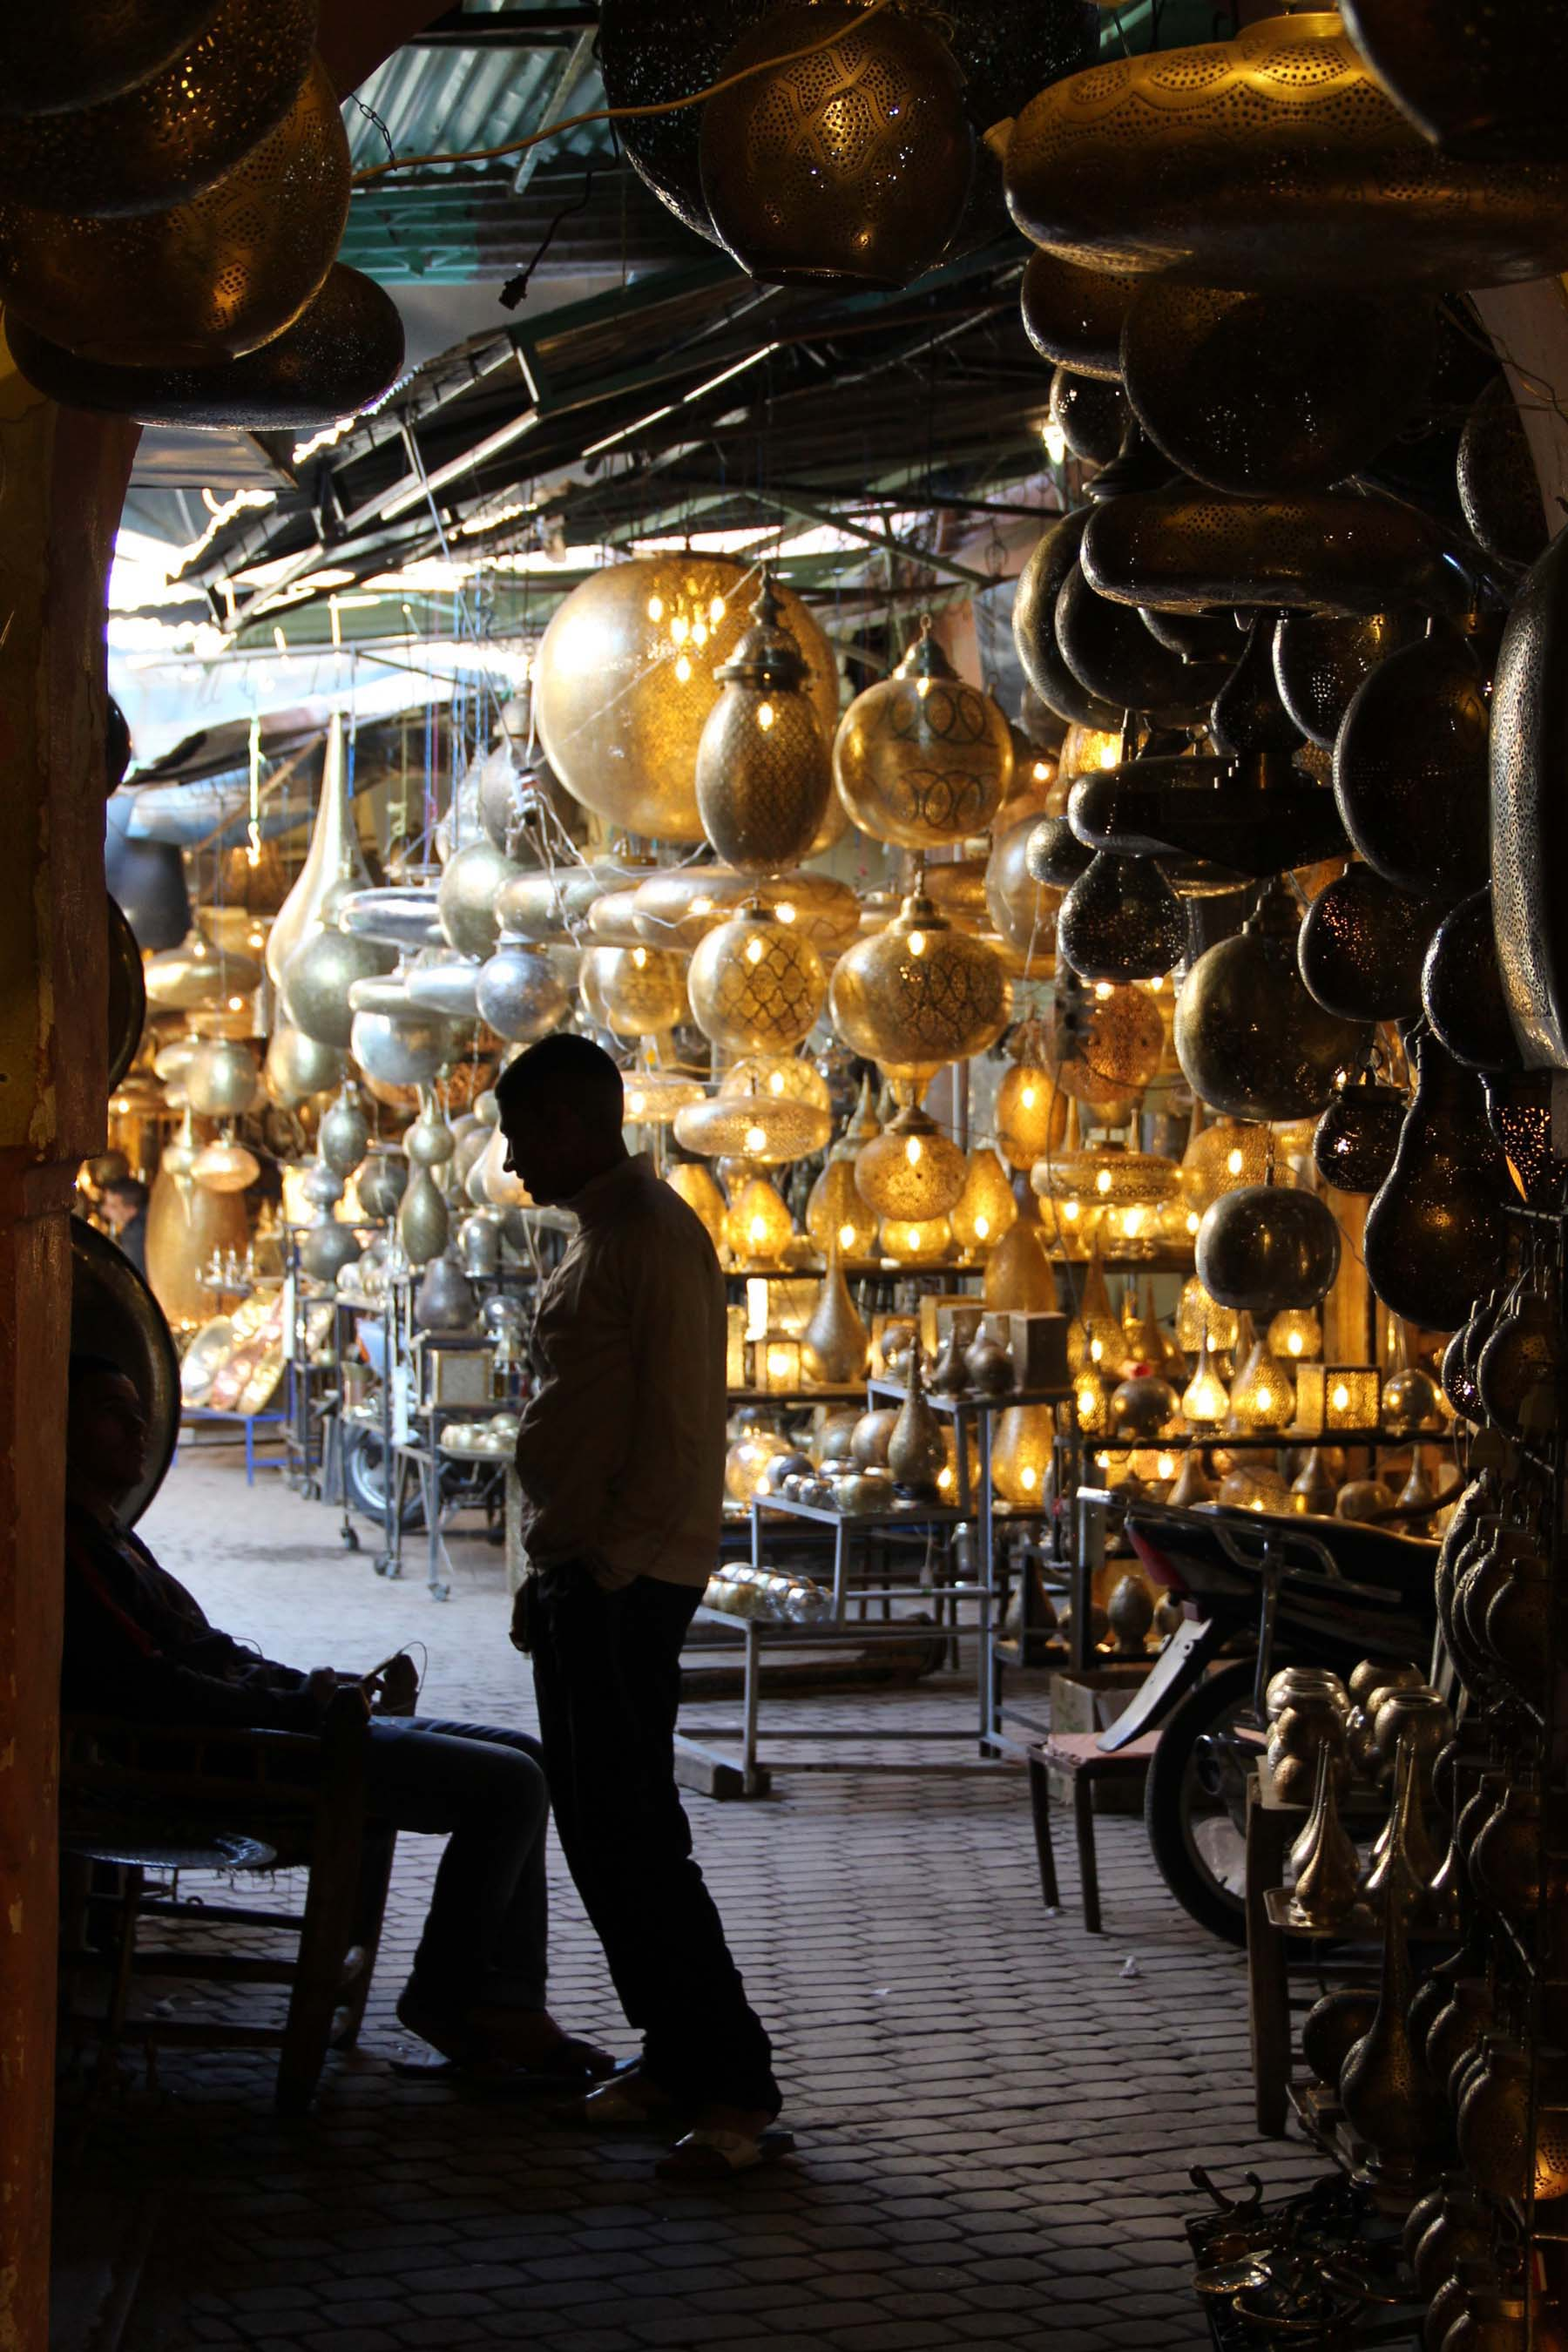 Lamps in a souk of Marrakech